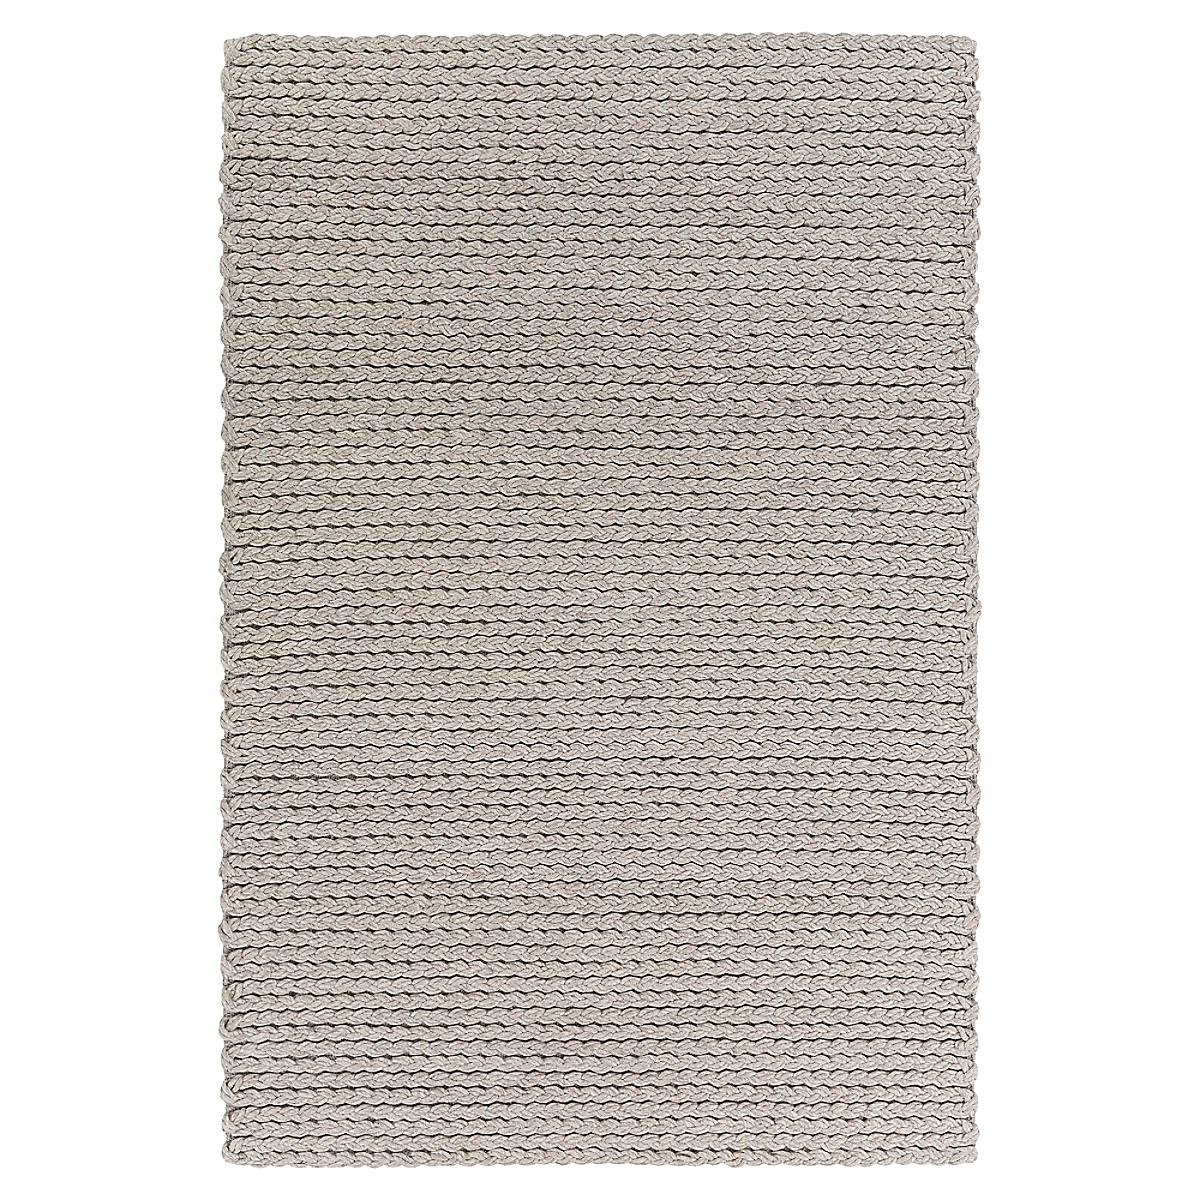 Double Braided Felted Wool Rug - Light Gray